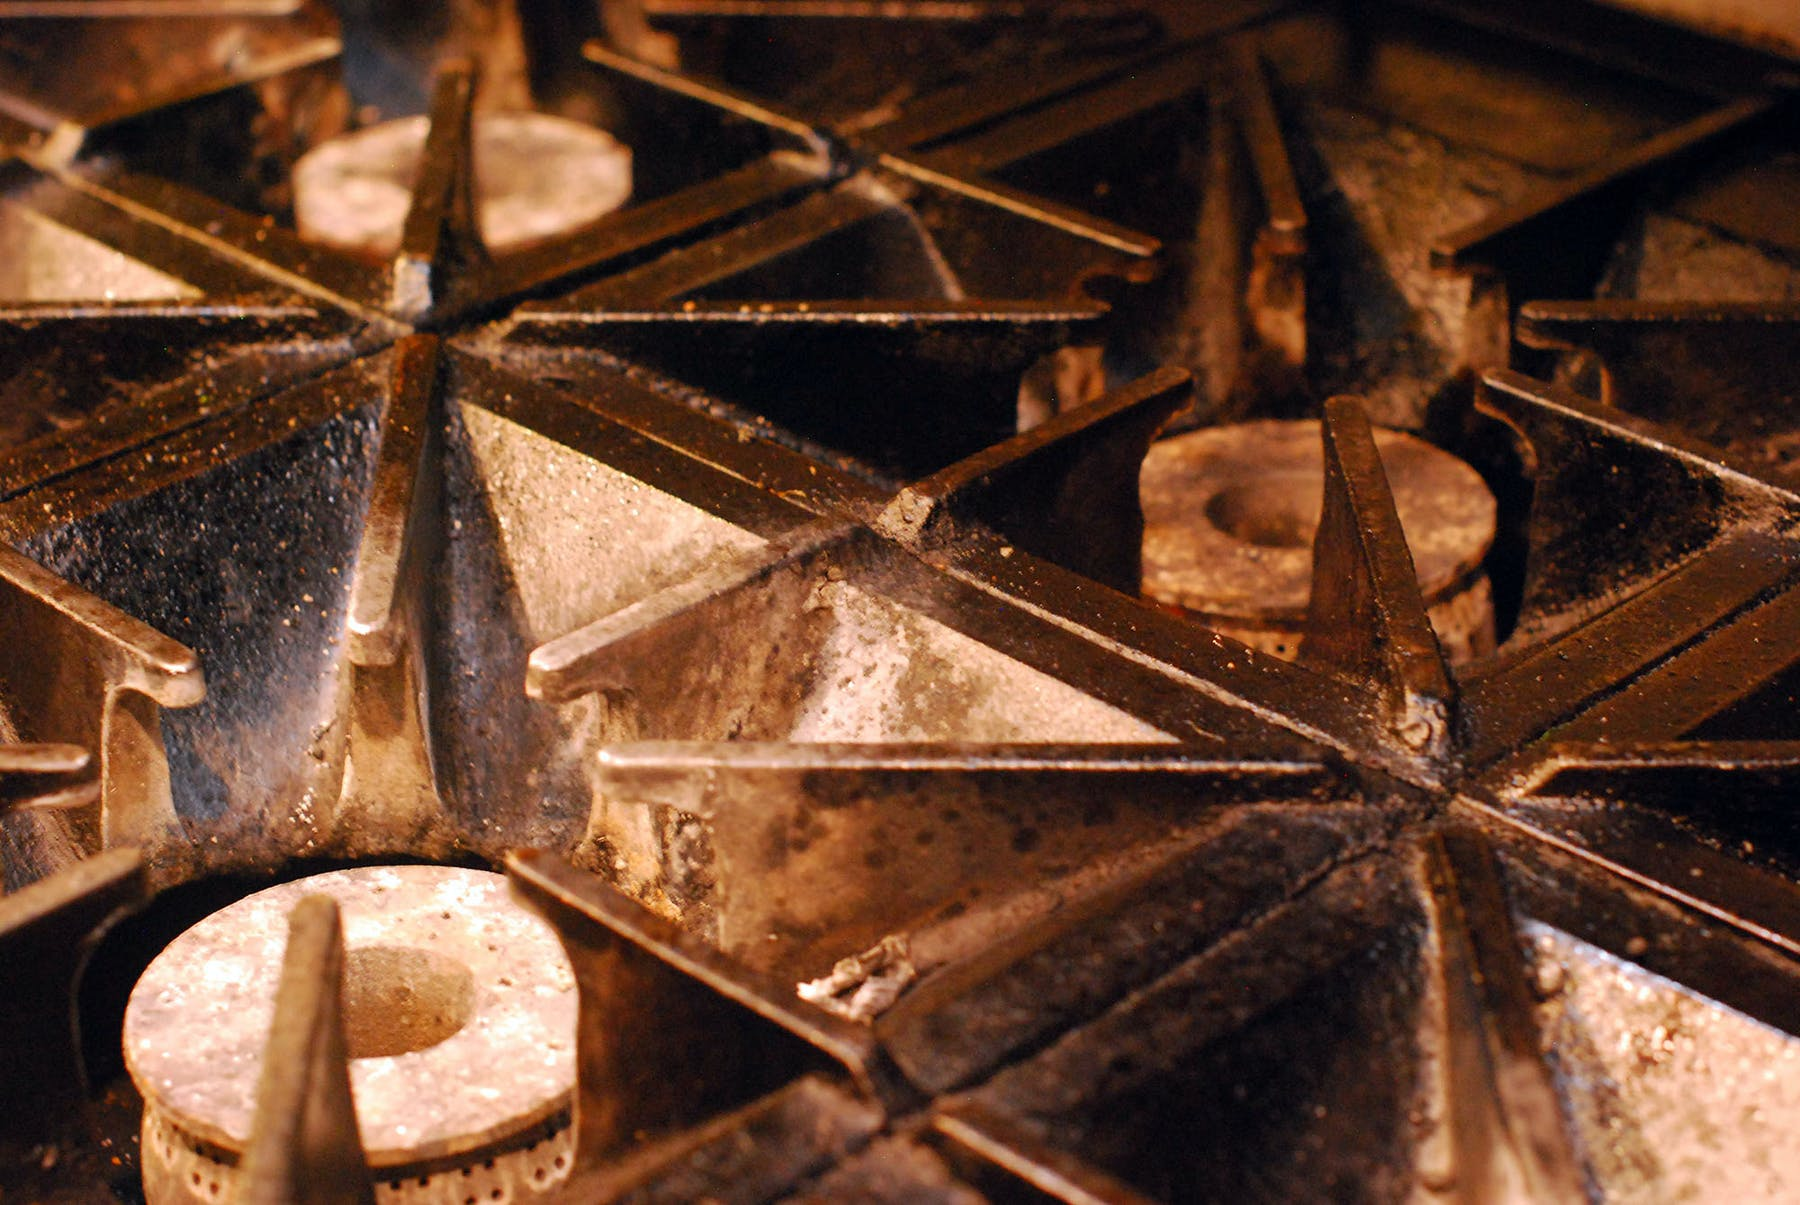 a close up of an oven